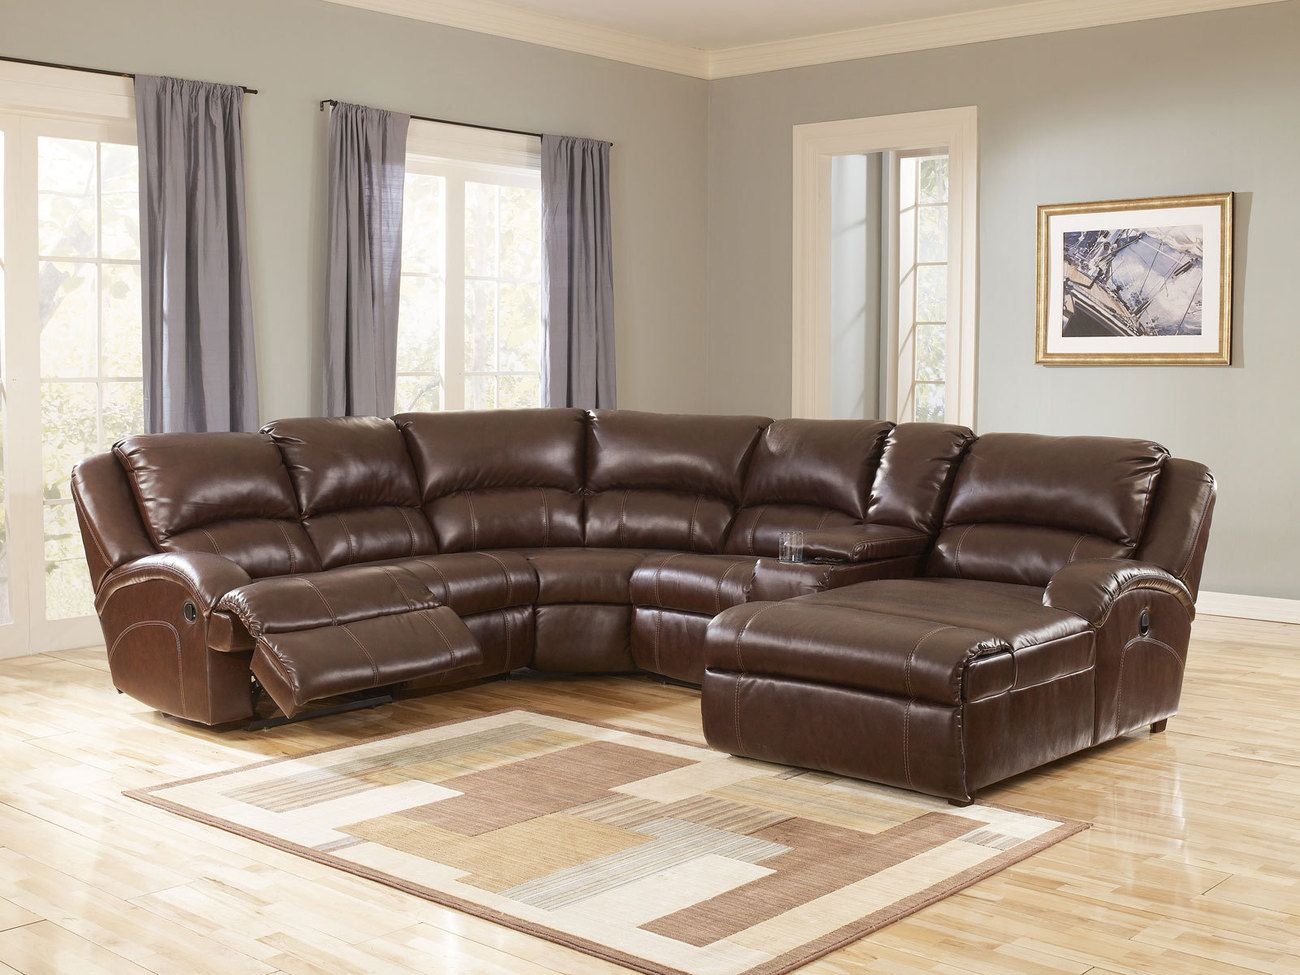 nice Unique Leather Reclining Sectional Sofa 46 For Hme Designing Inspiration with Leather Reclining Sectional Sofa : leather couch with recliners - islam-shia.org